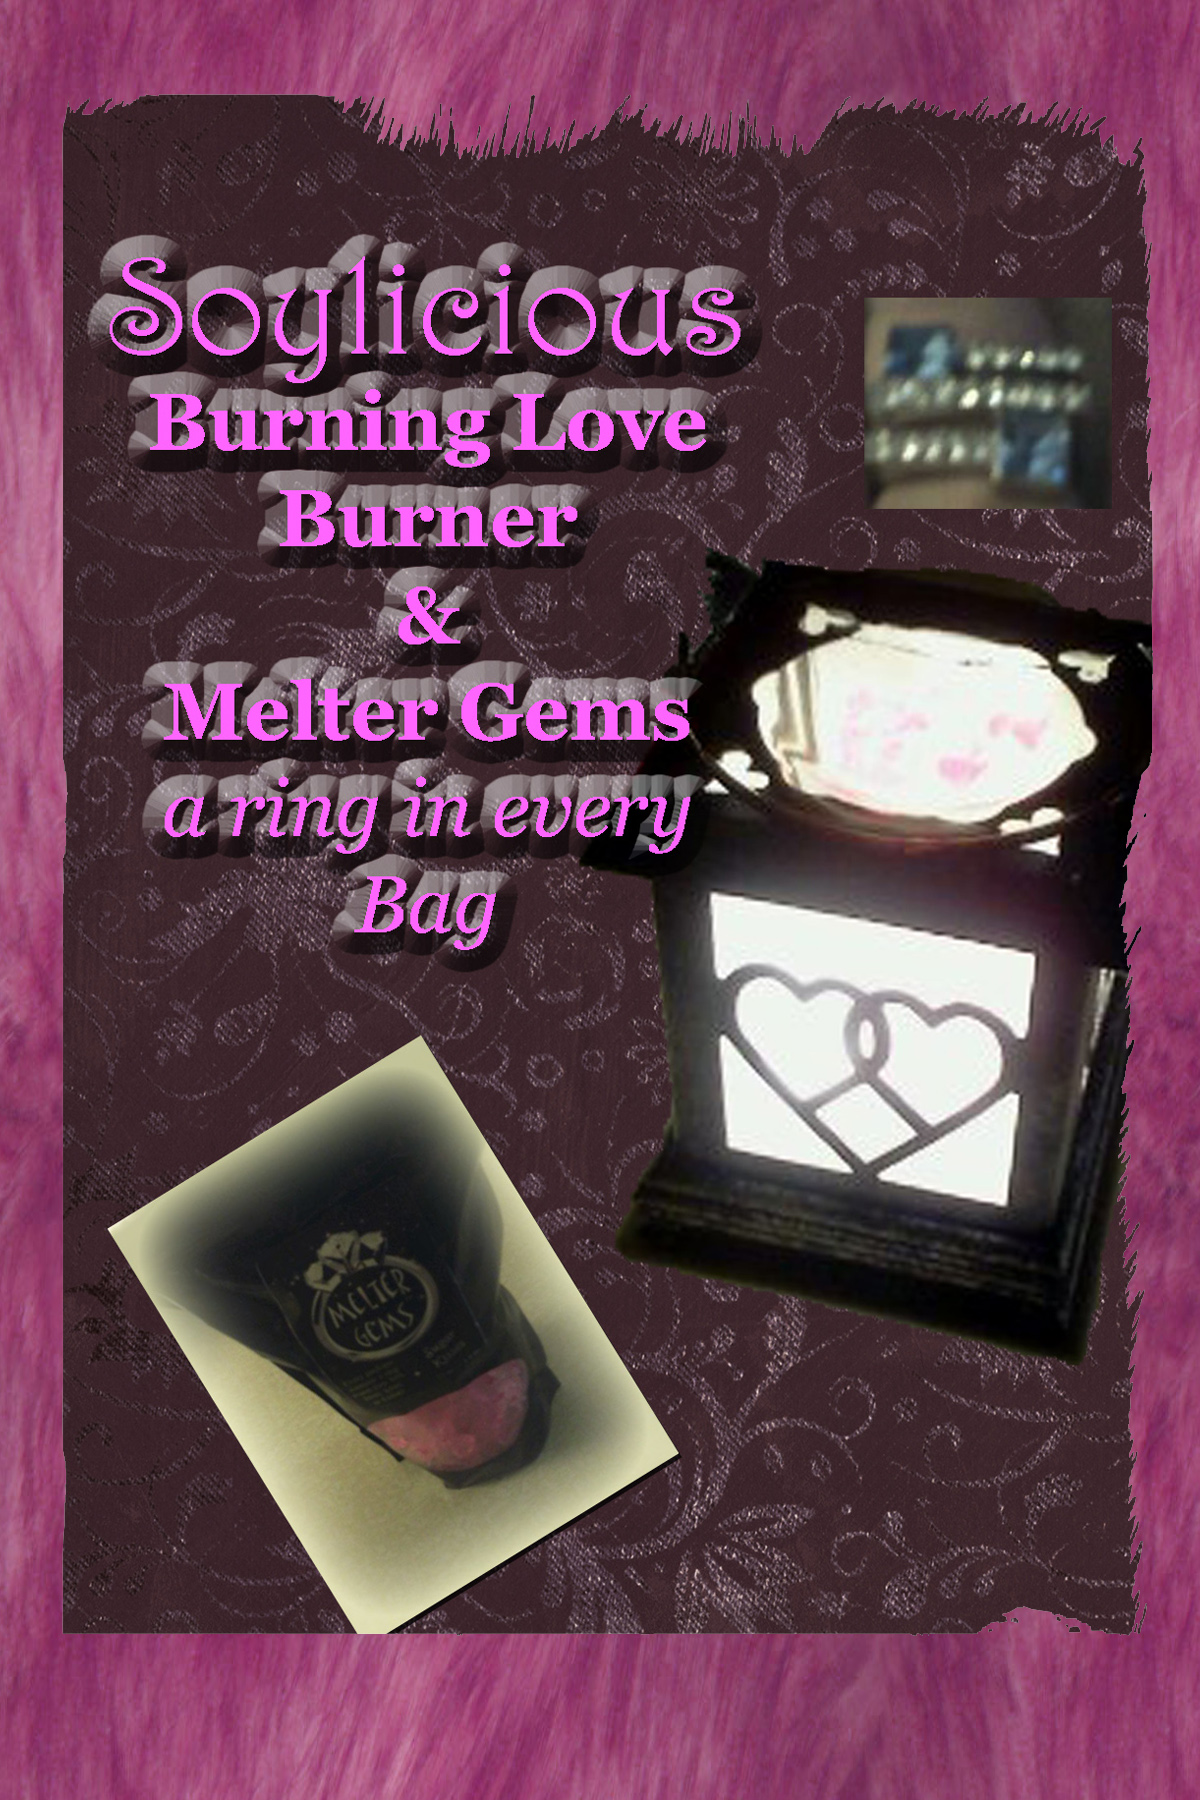 Soylicious Burning love burner and melter gems review